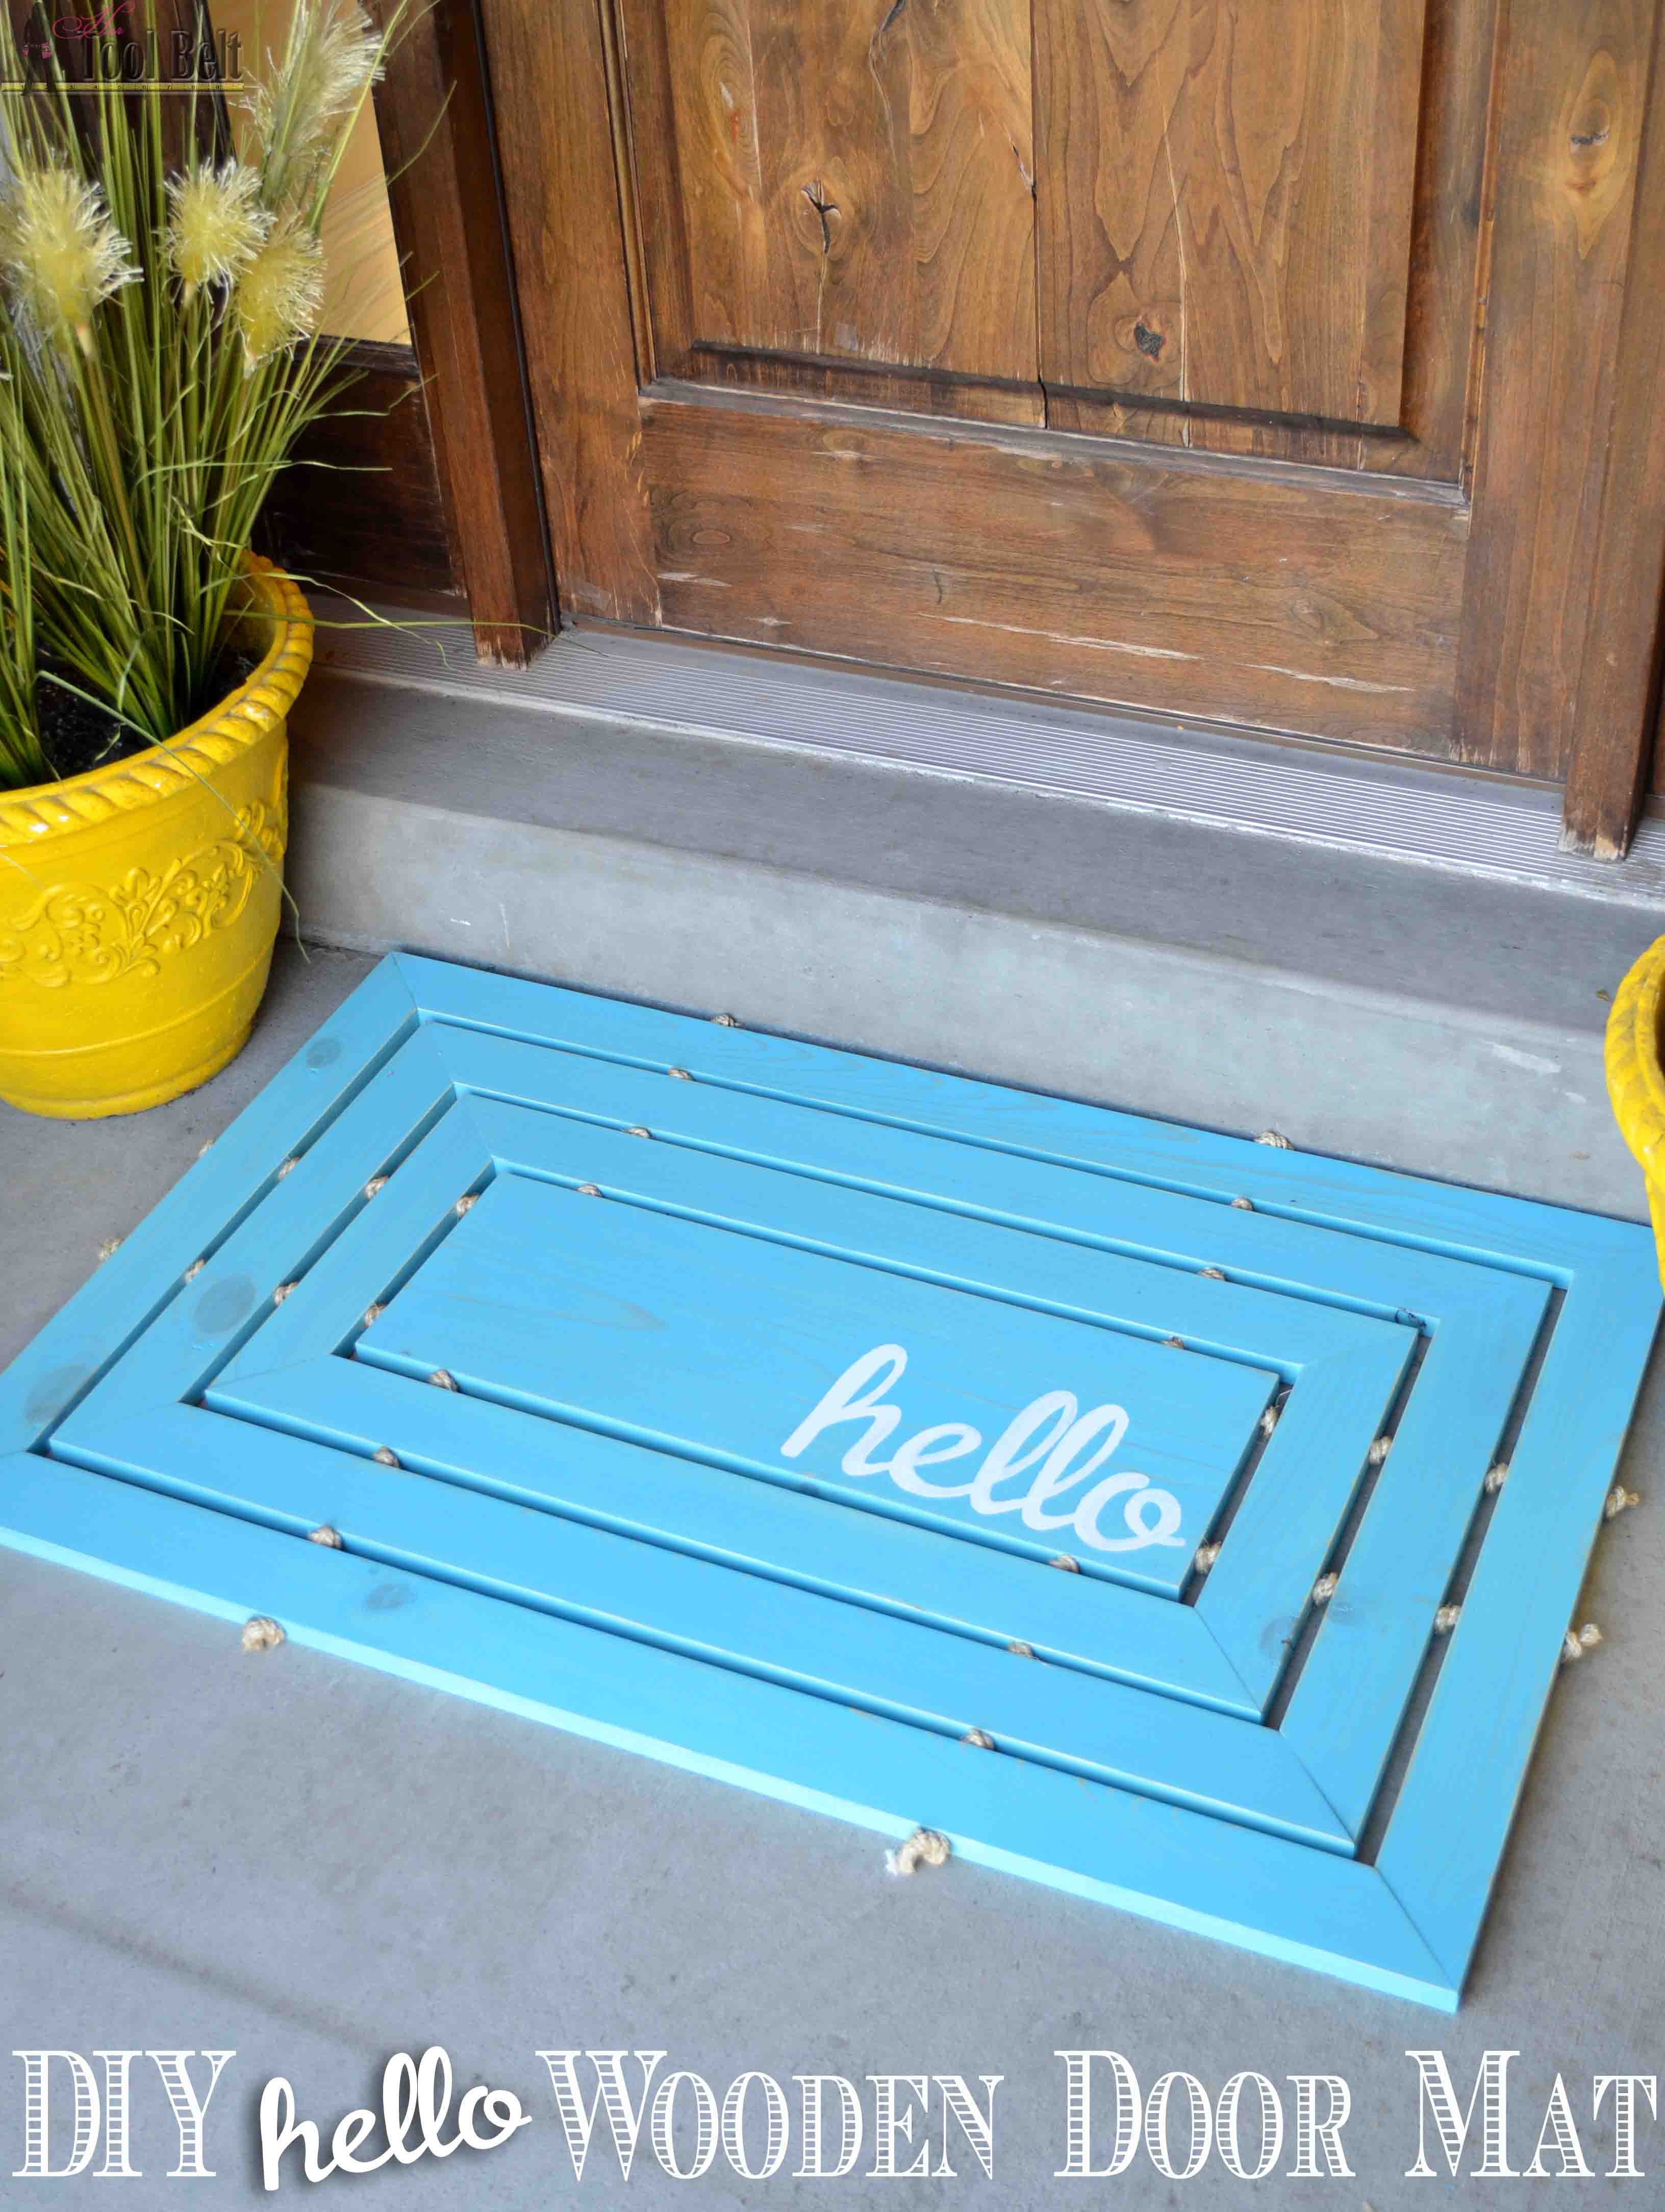 Wooden Door Mat - Her Tool Belt